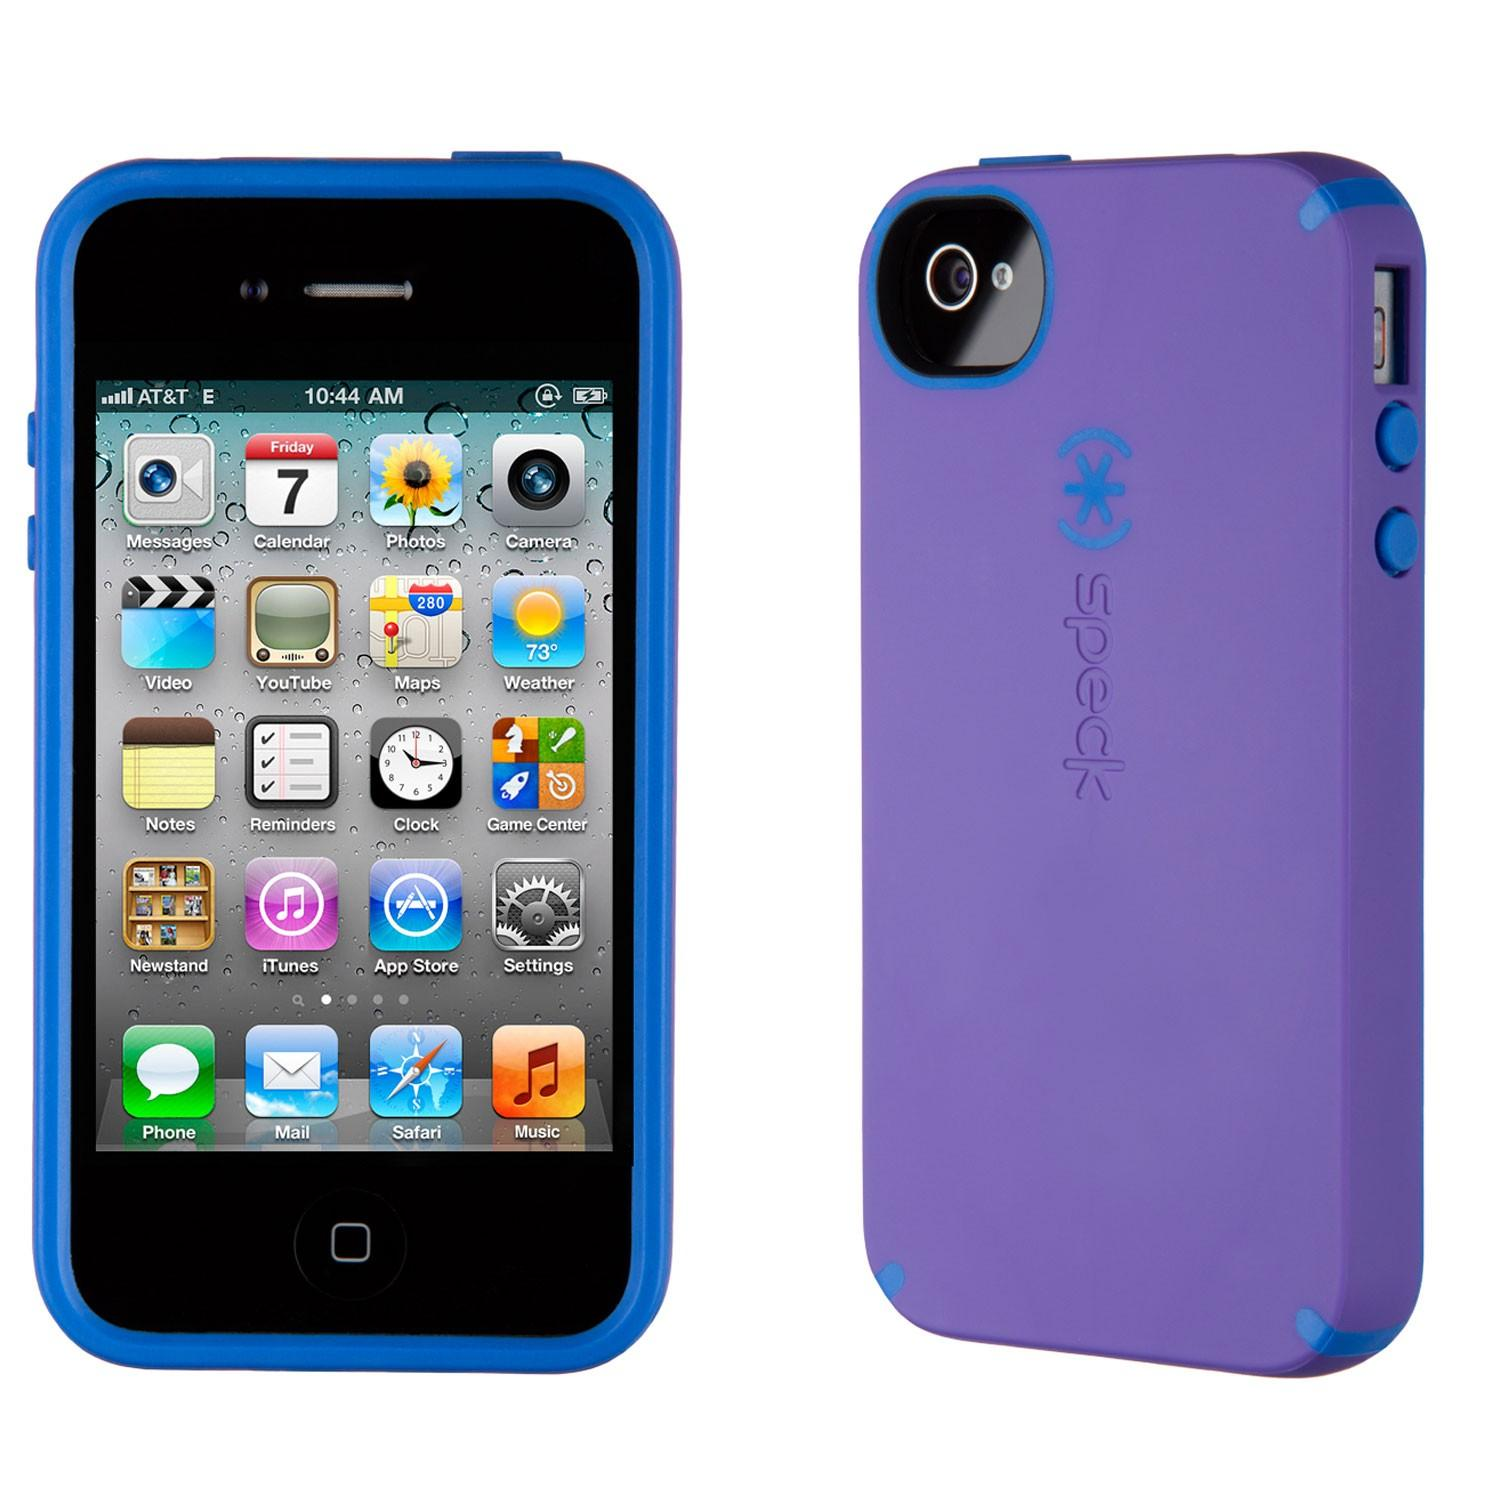 Iphone 4s Cases Speck Purple Speck purple/navy blue candy